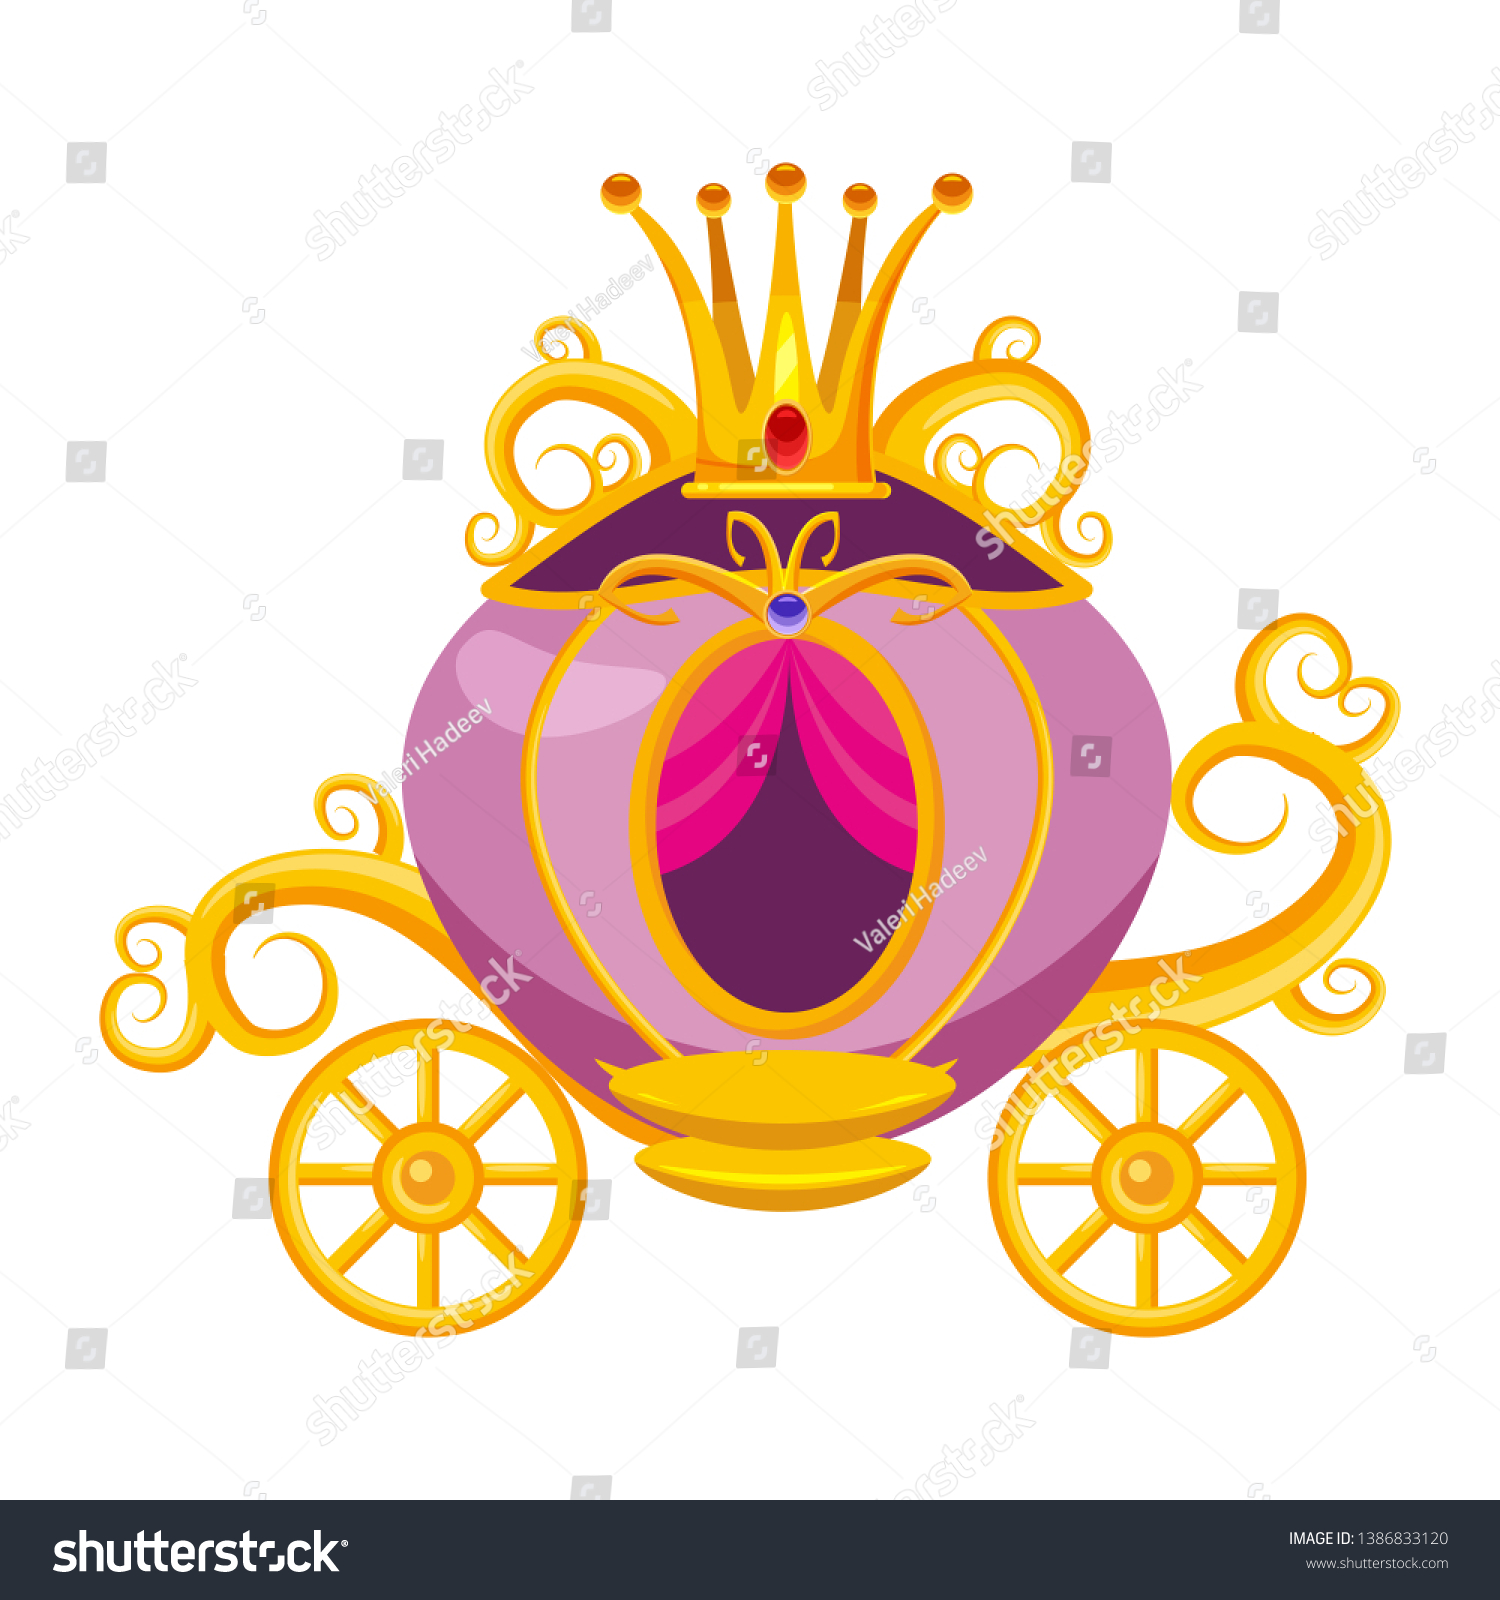 Princess Carriage Decorated Diamonds Crown Precious Stock Vector Royalty Free 1386833120 Almost files can be used for commercial. https www shutterstock com image vector princess carriage decorated diamonds crown precious 1386833120